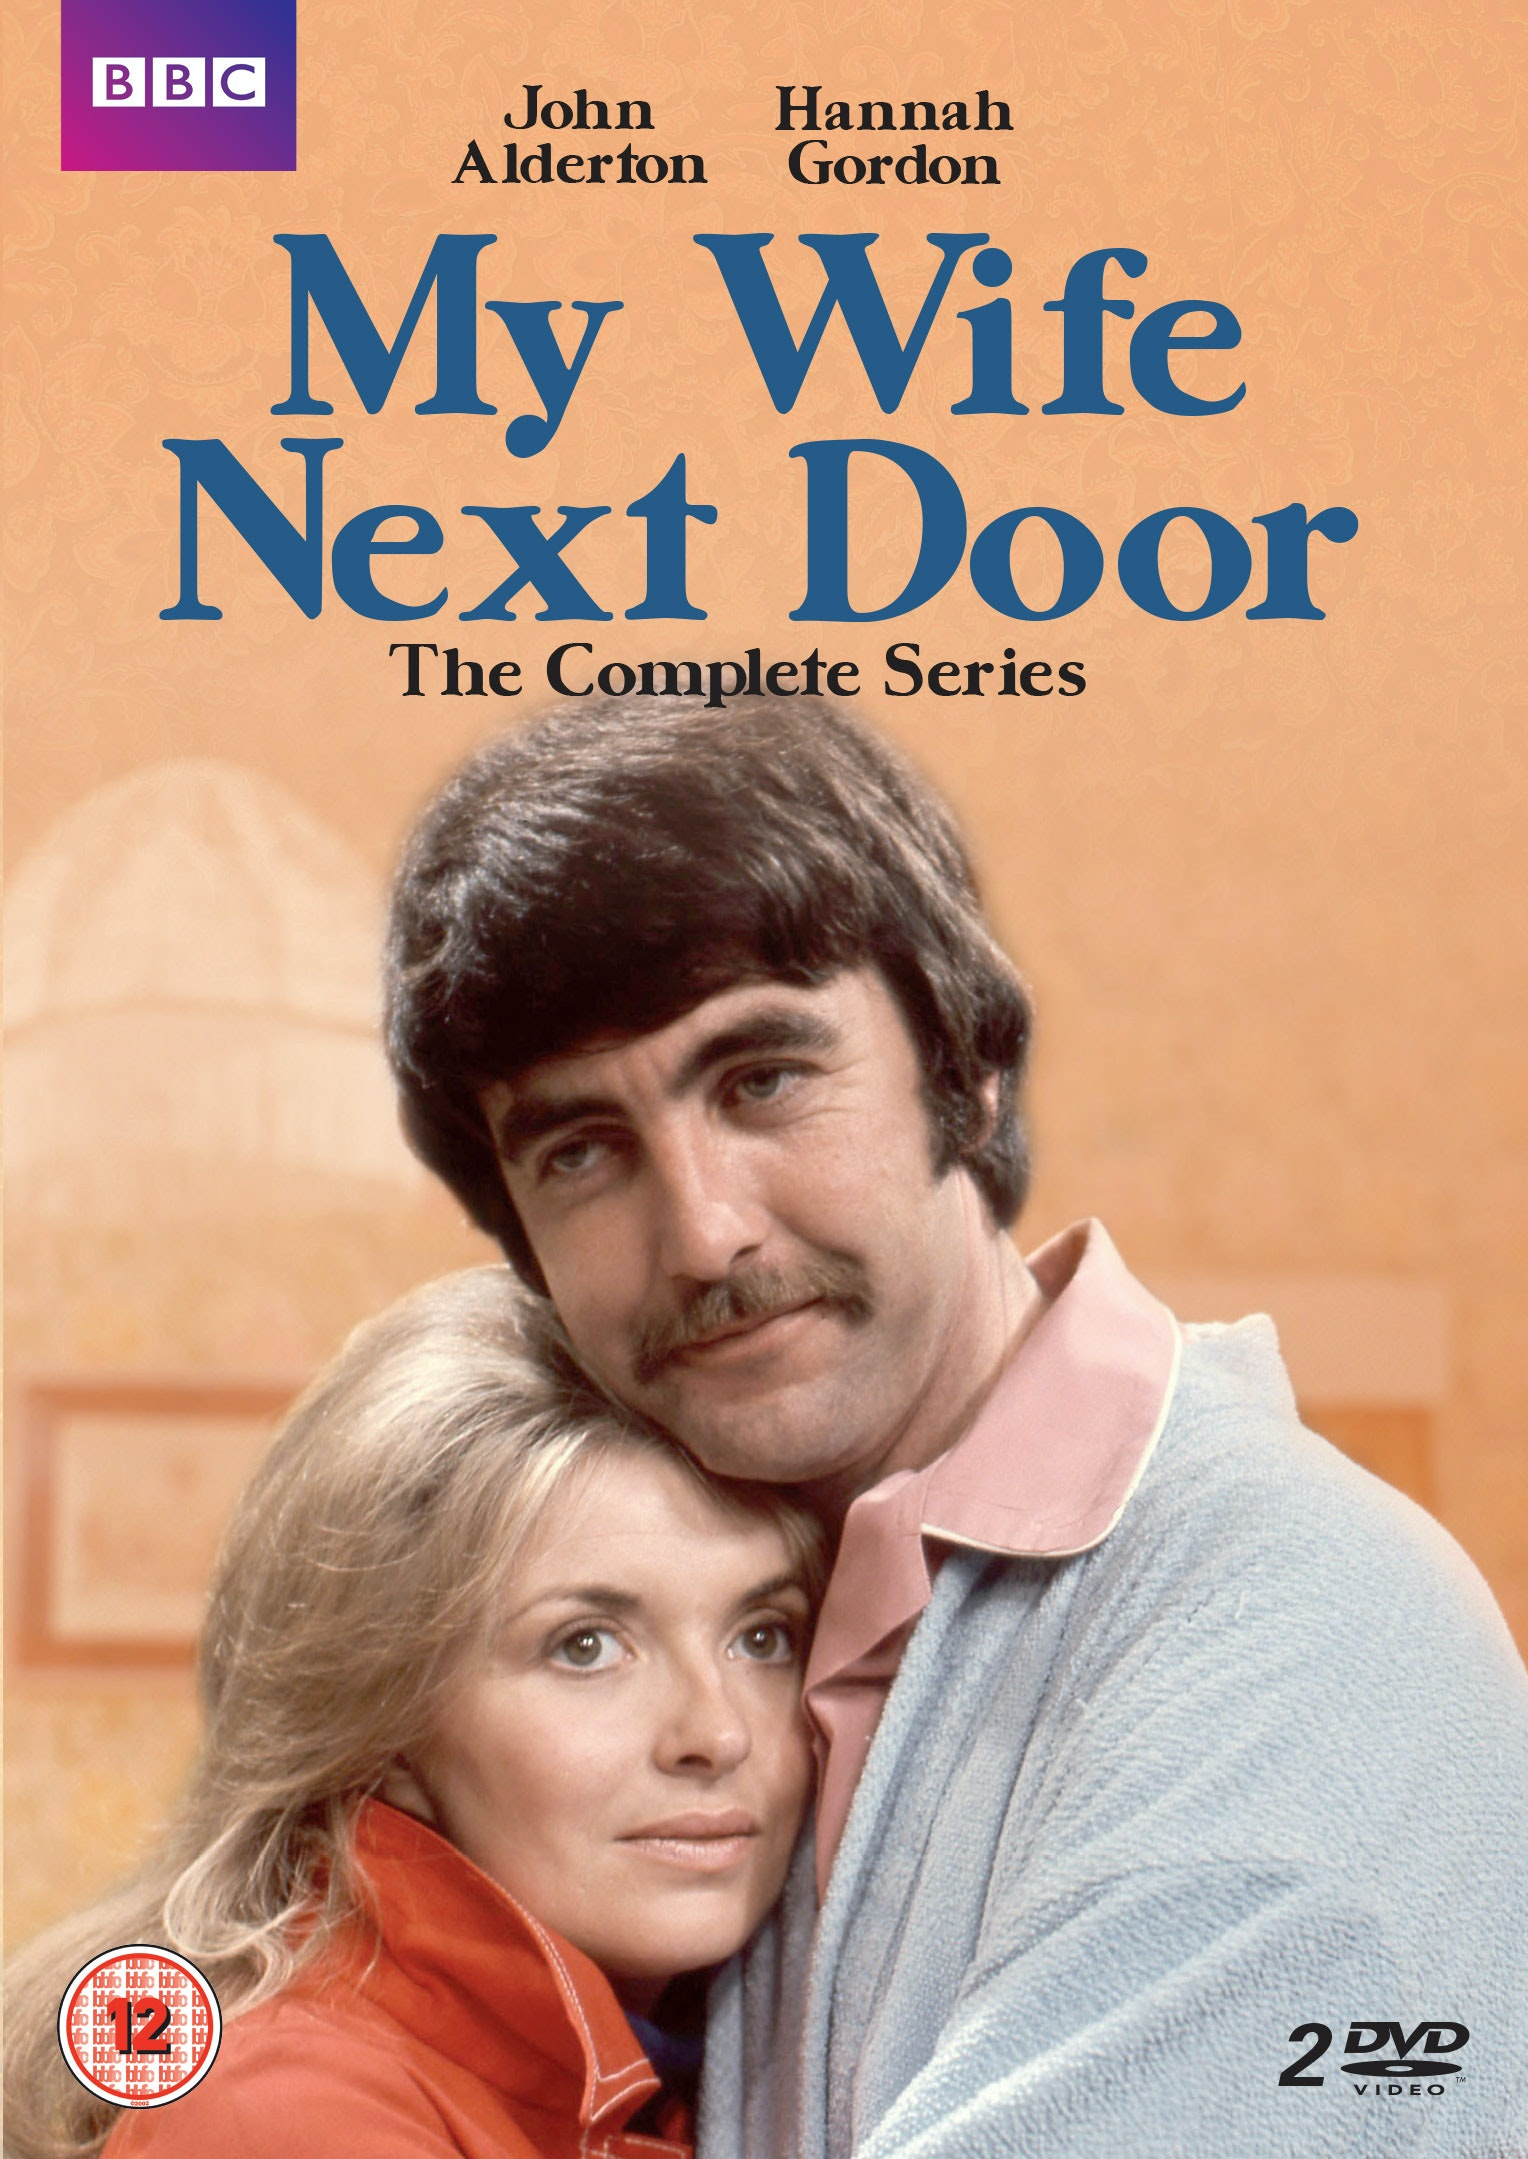 My Wife Next door DVD sweepstakes